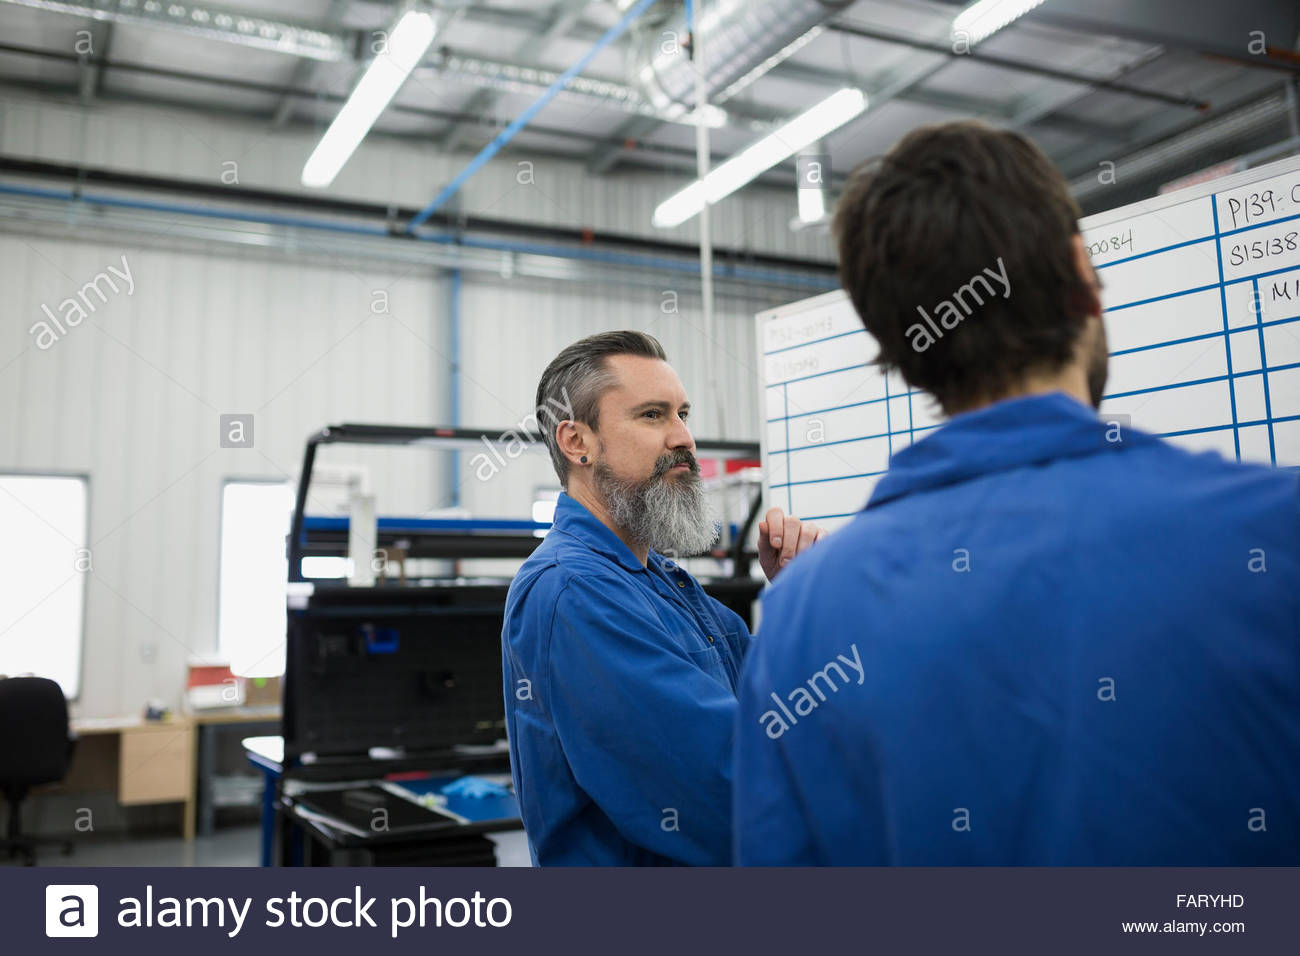 Helicopter mechanics planning at whiteboard - Stock Image